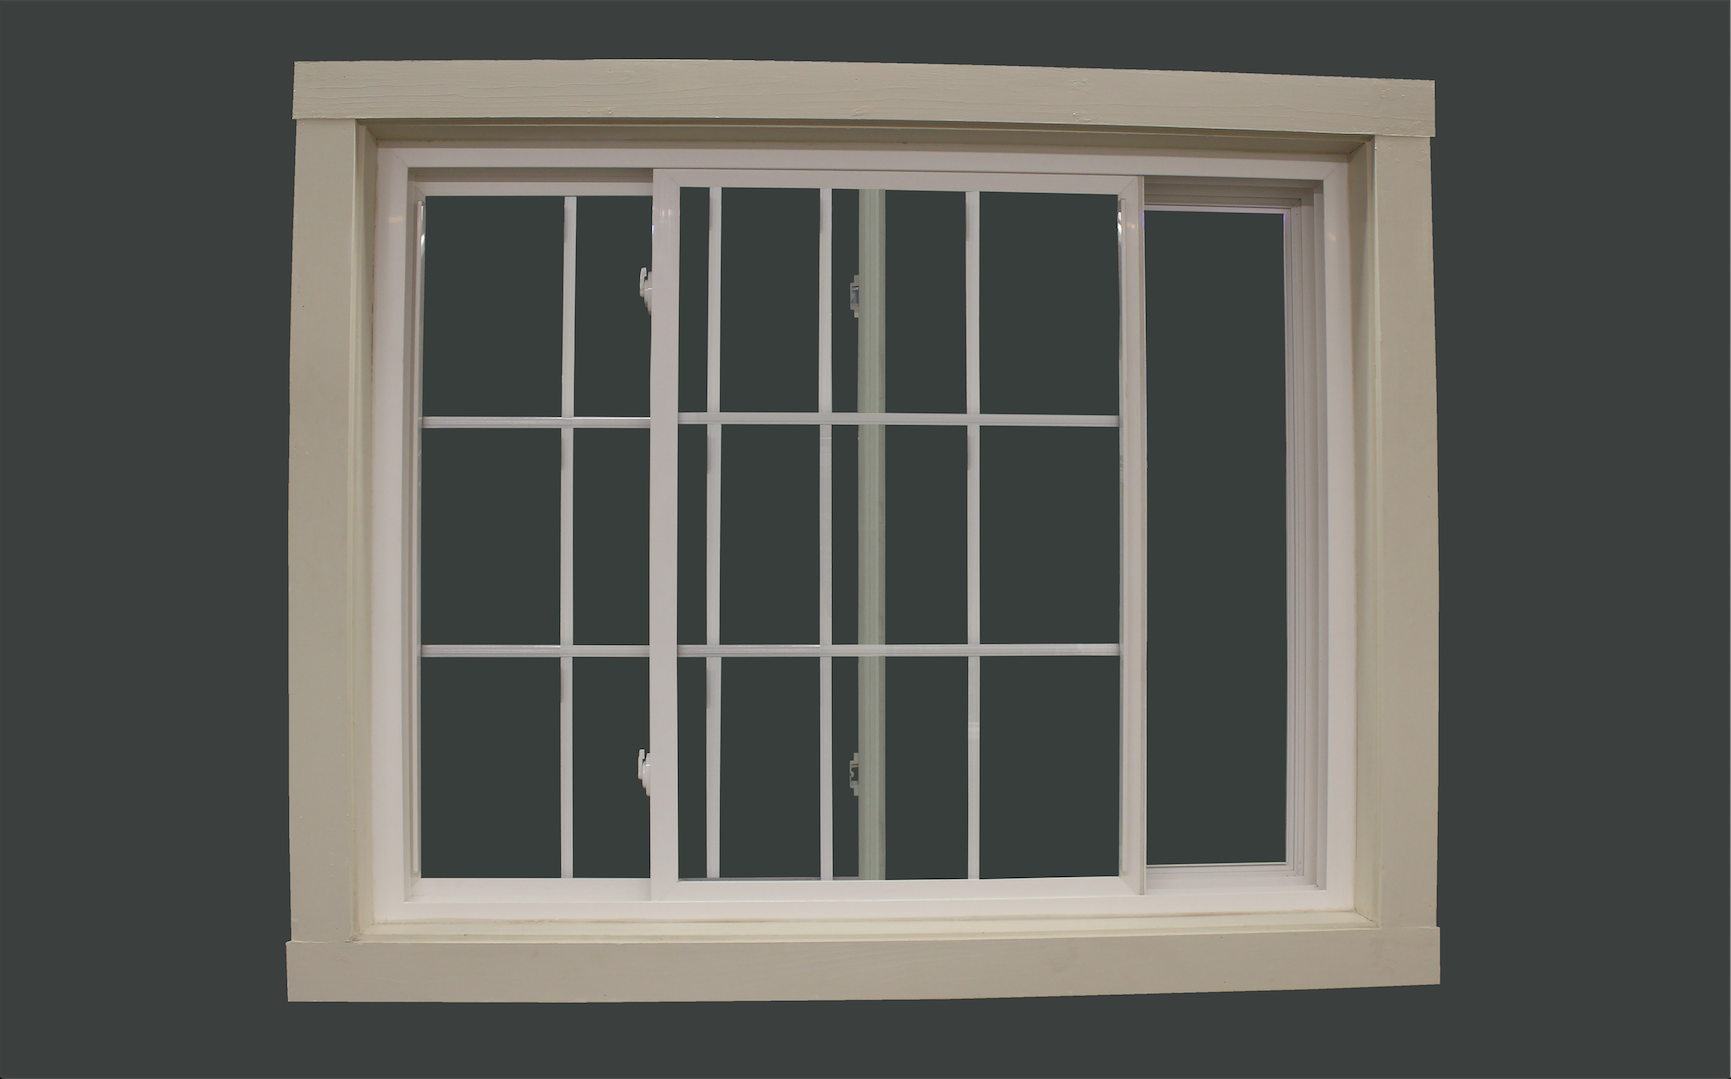 New Construction Sliding Window Specialty Wholesale Supply